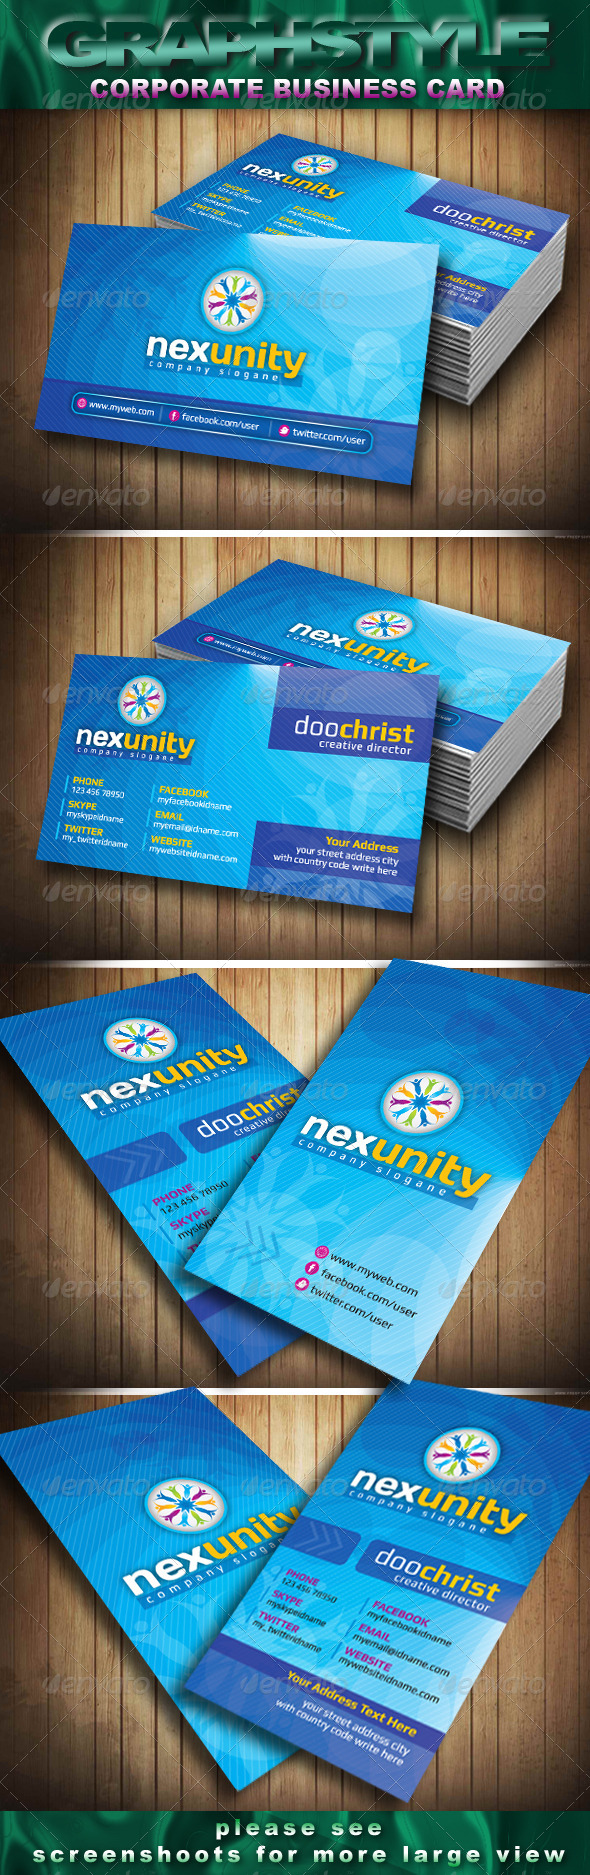 GraphicRiver Nexunity Corporate Business Card 4325705